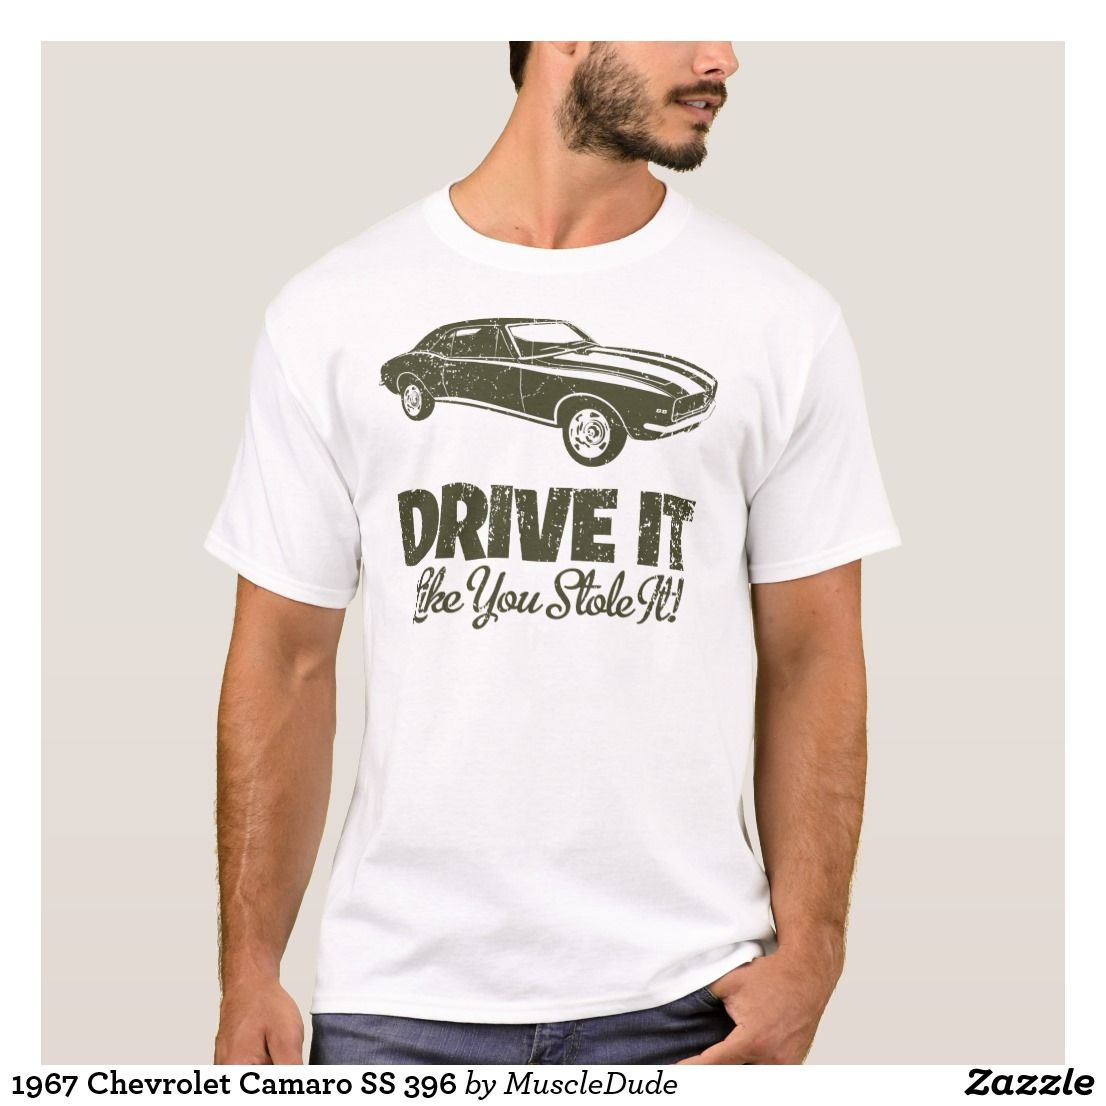 db925450 1967 Chevrolet Camaro SS 396 T-Shirt for sale, Drive it like you stole it. # chevrolet #camaro